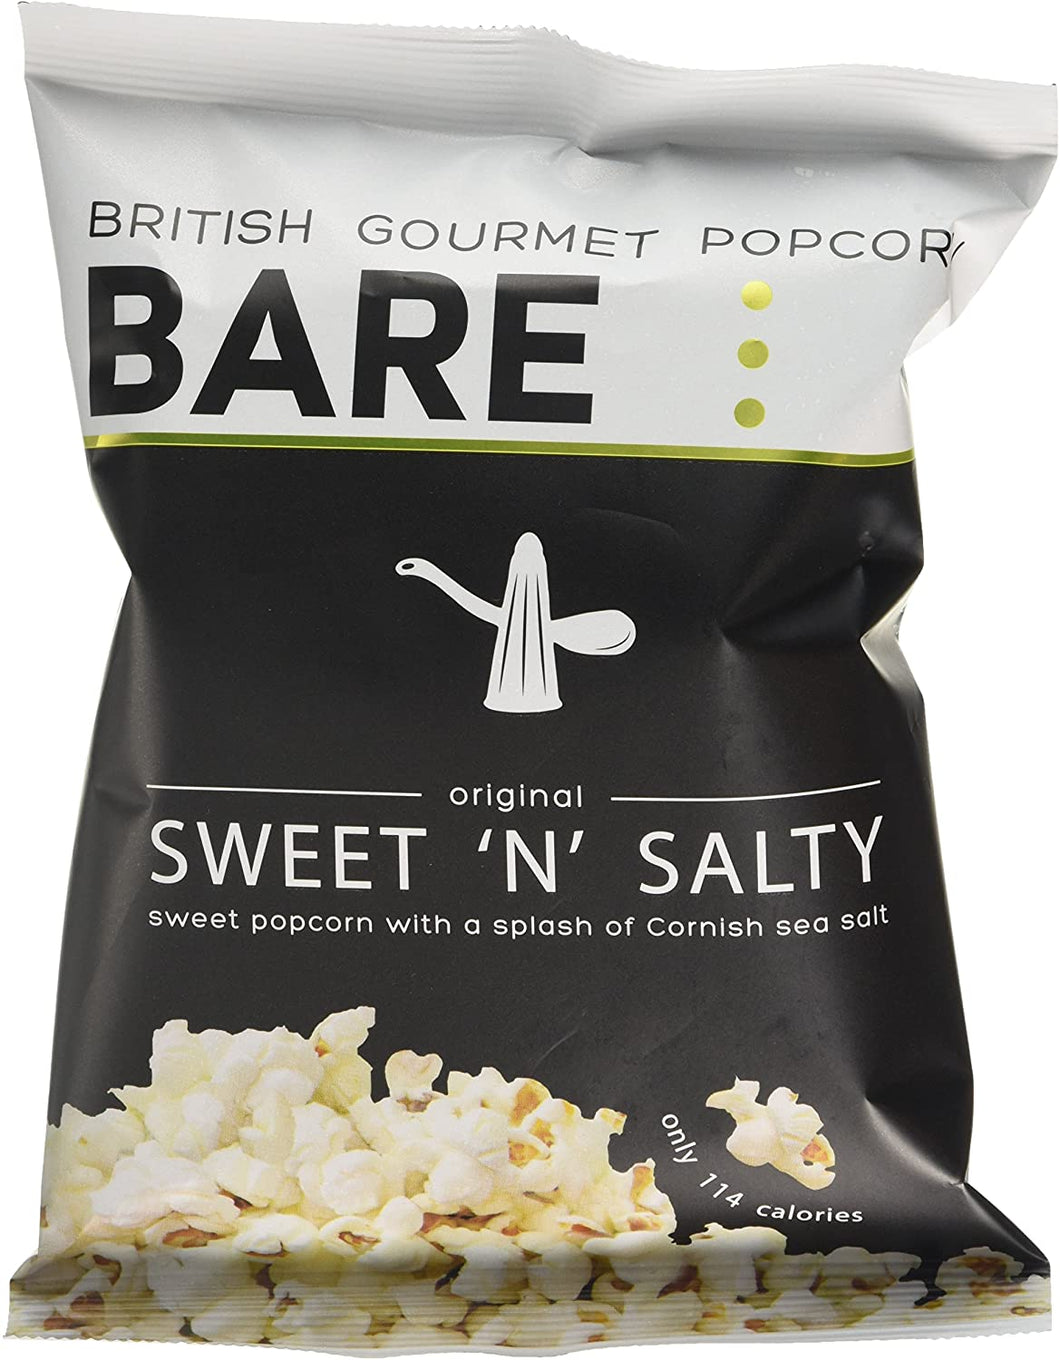 BARE Sweet & Salty Popcorn